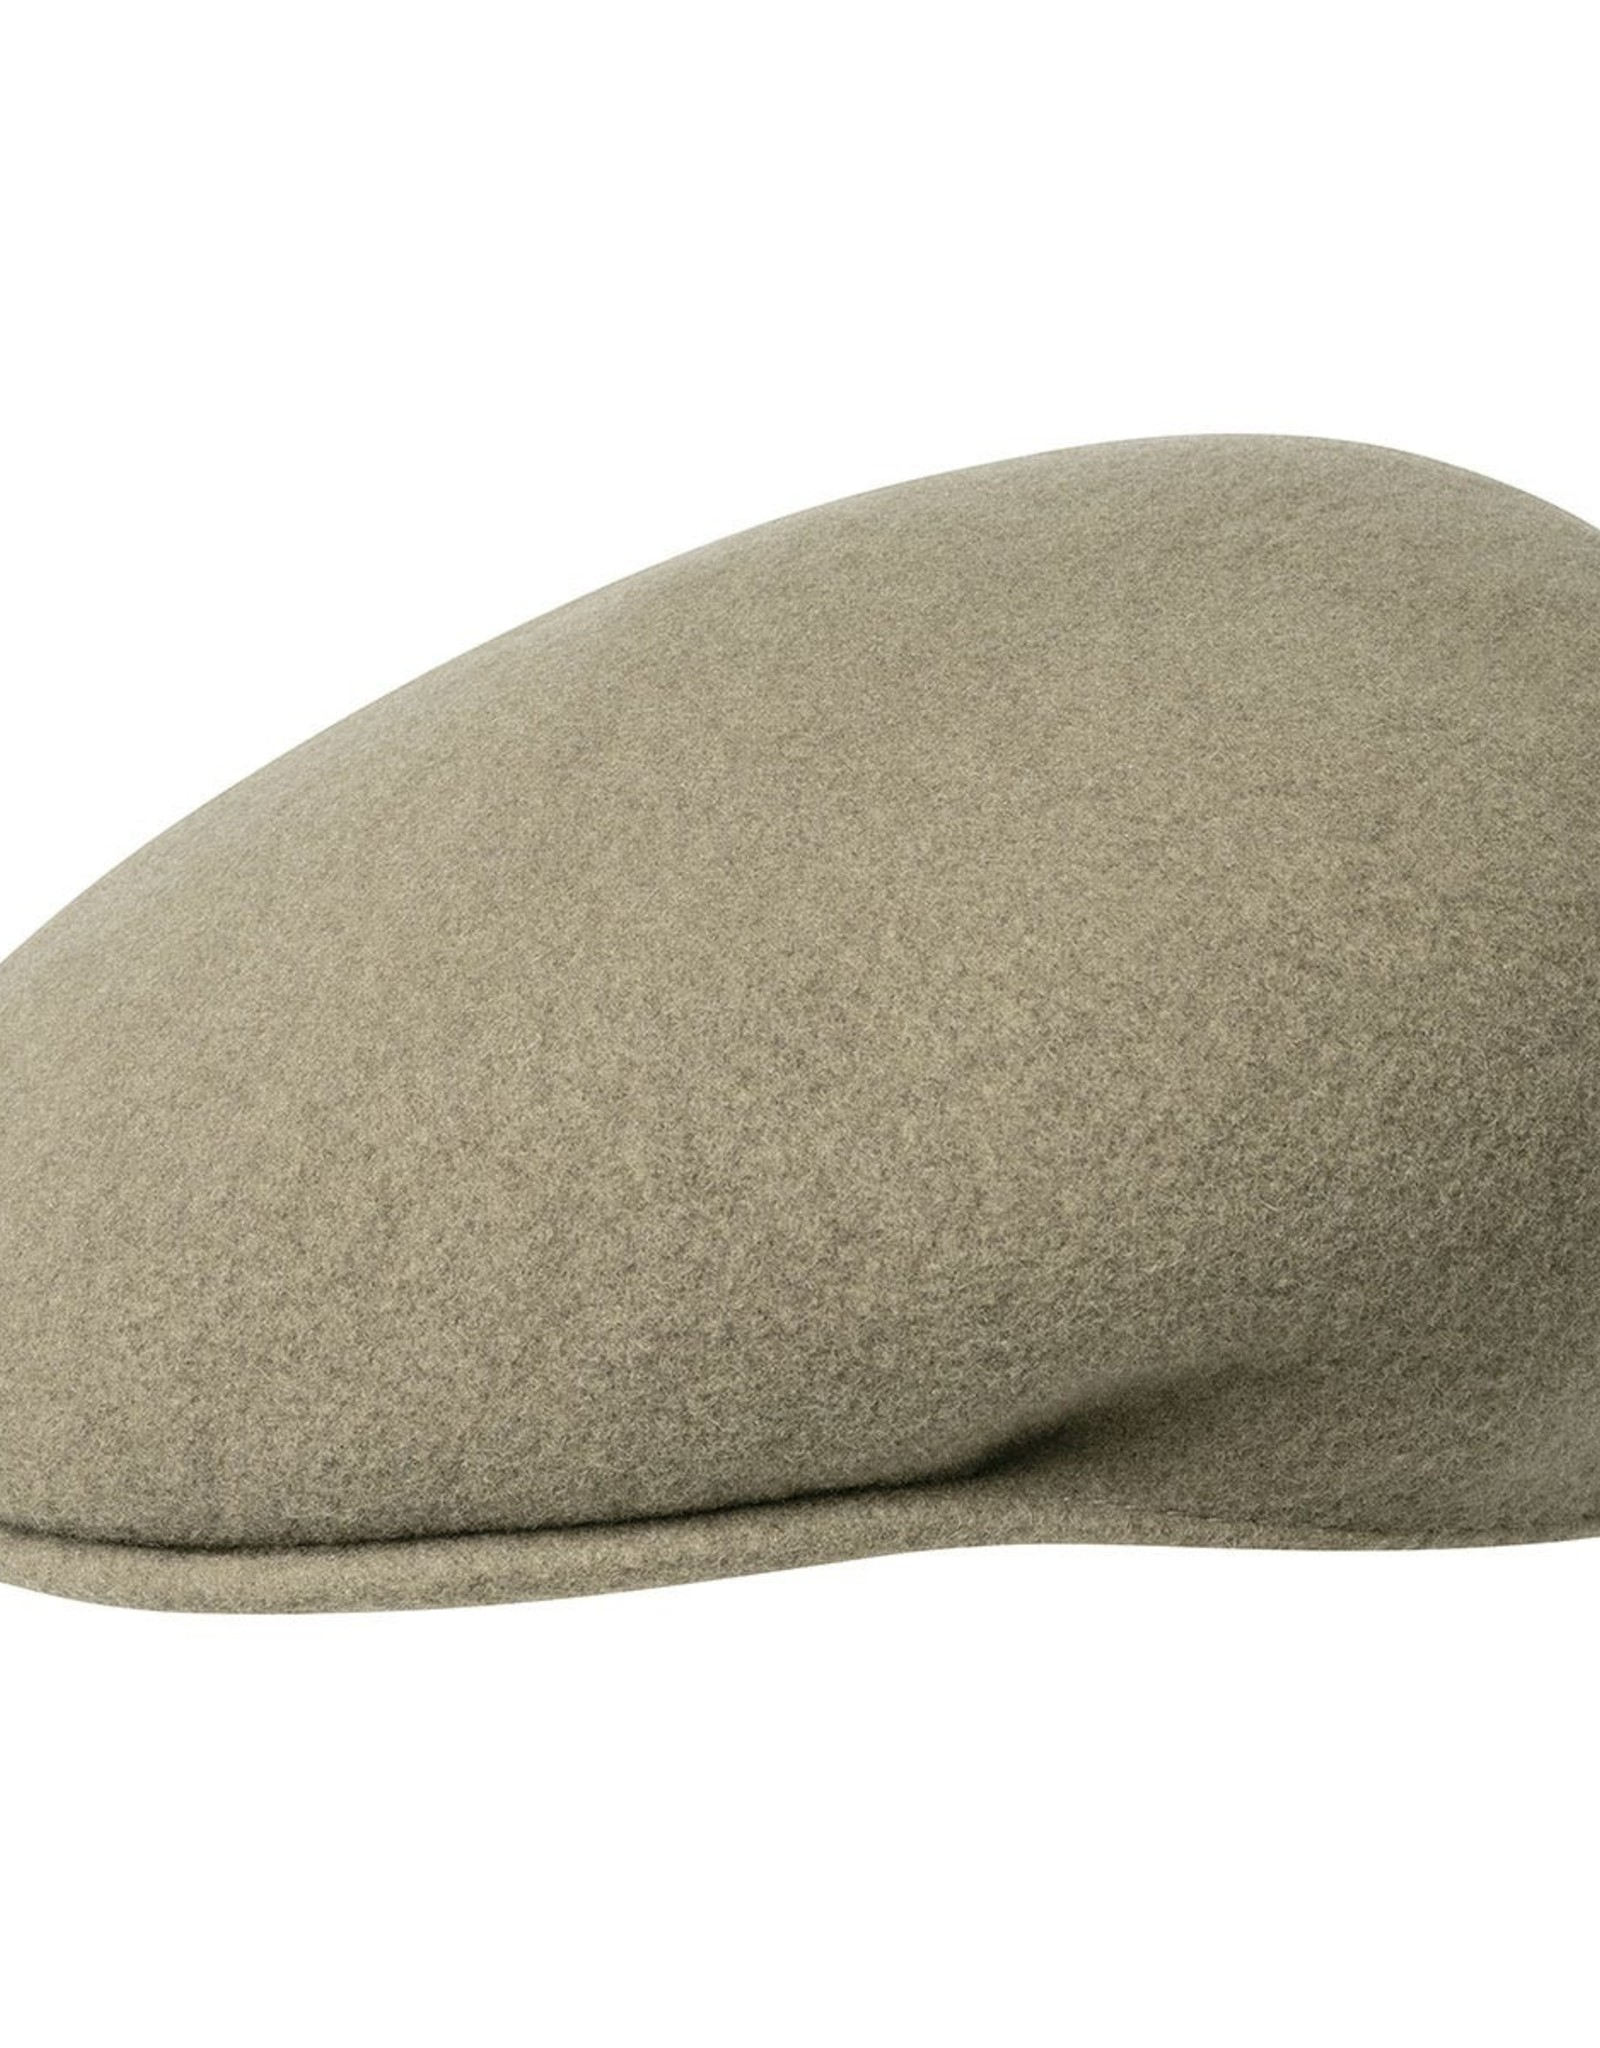 kangol Kangol Wool 504 Taupe Medium